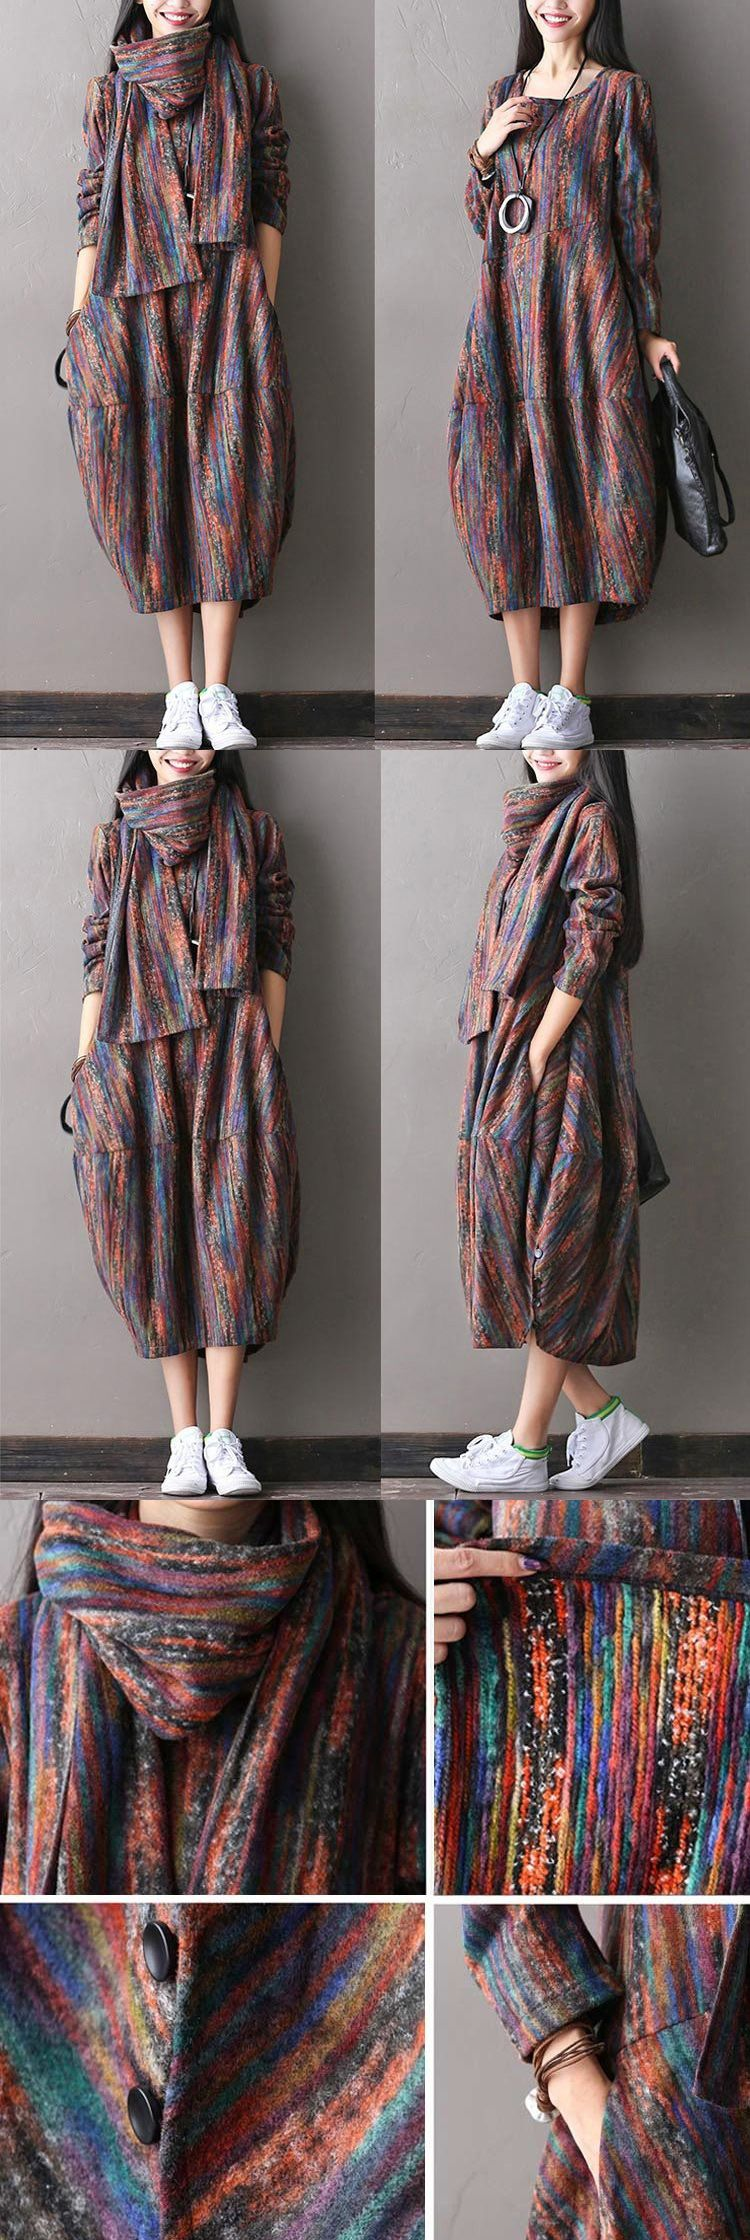 Women woolen autumn dress for a charming look! buykud.com #backlesscocktaildress